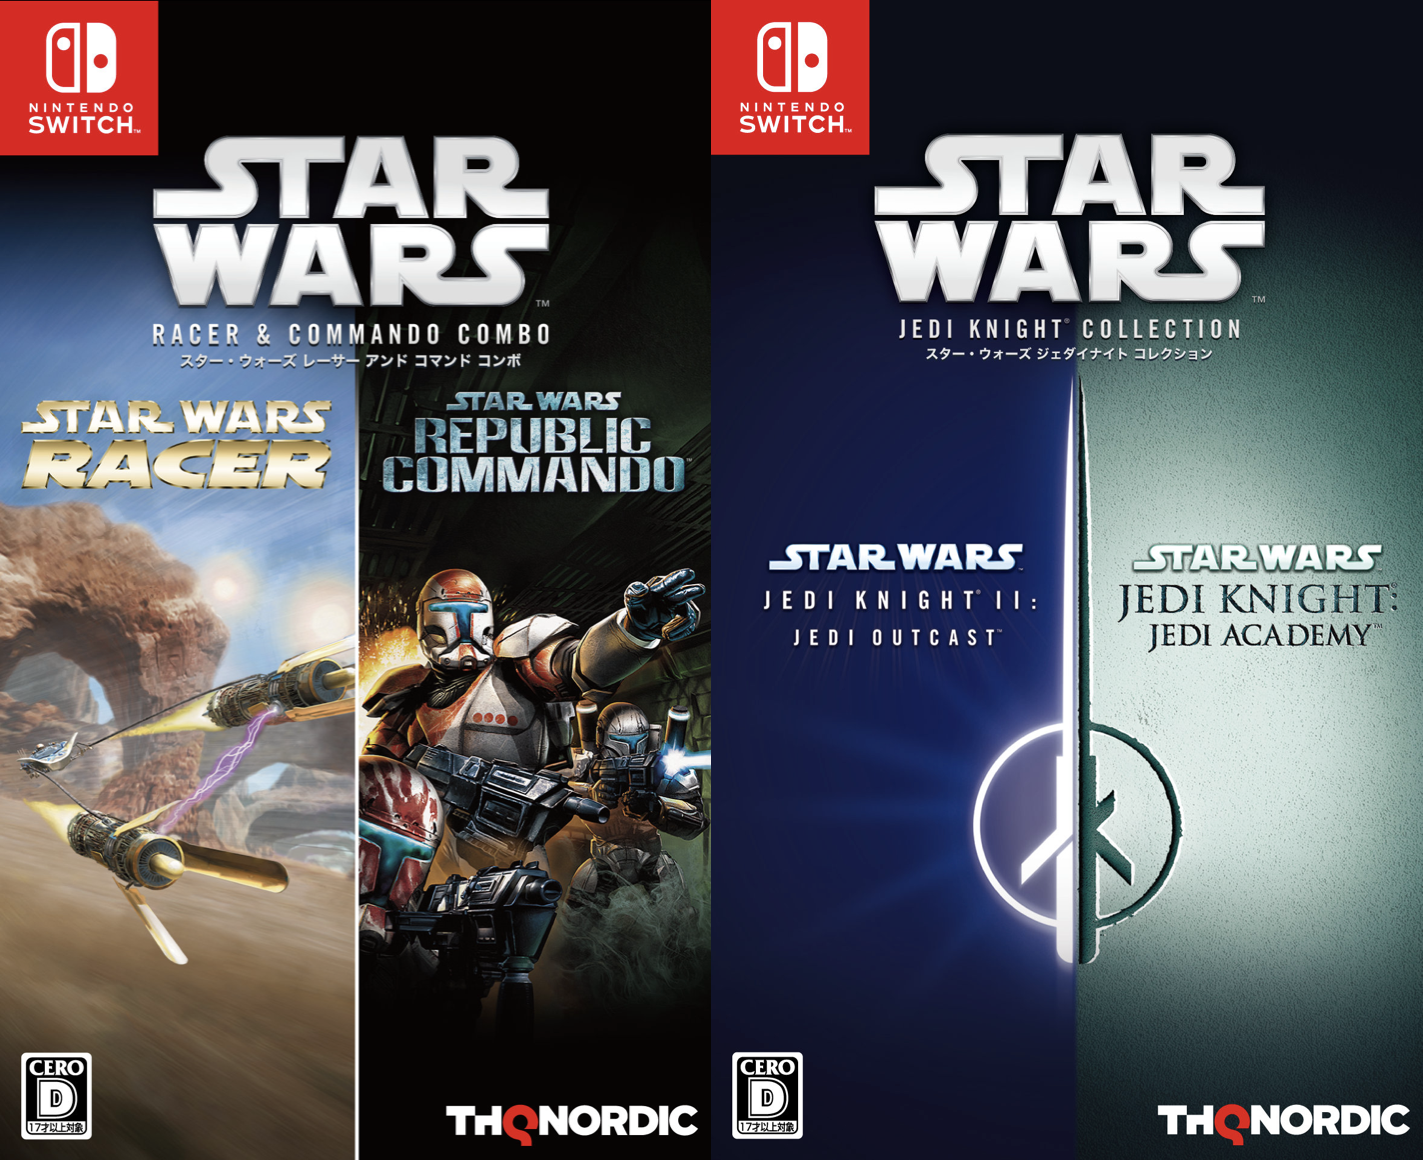 Star Wars Combo Packs Hitting Switch in Japan this December